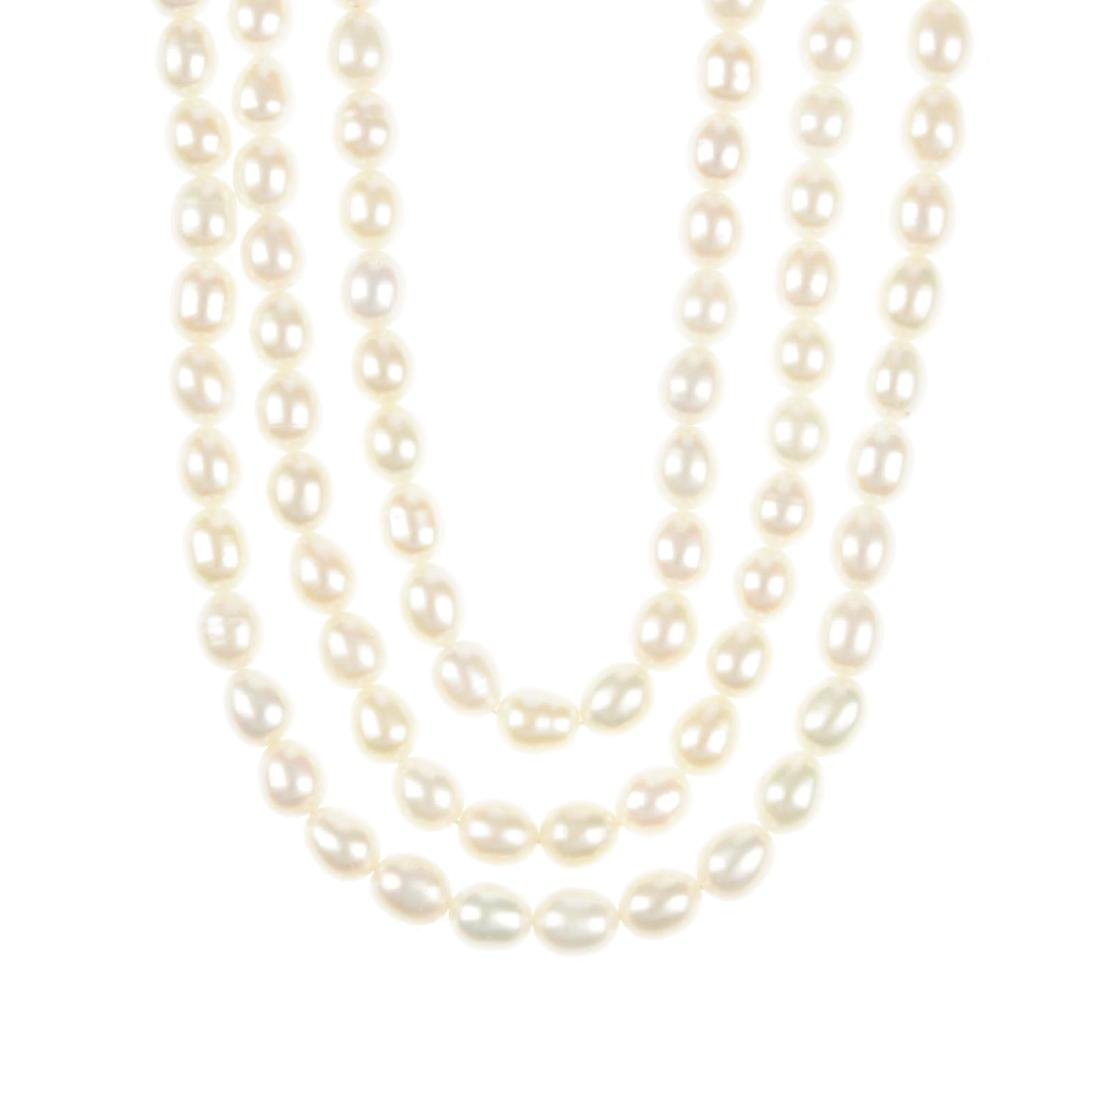 A cultured pearl necklace. Comprising three rows of